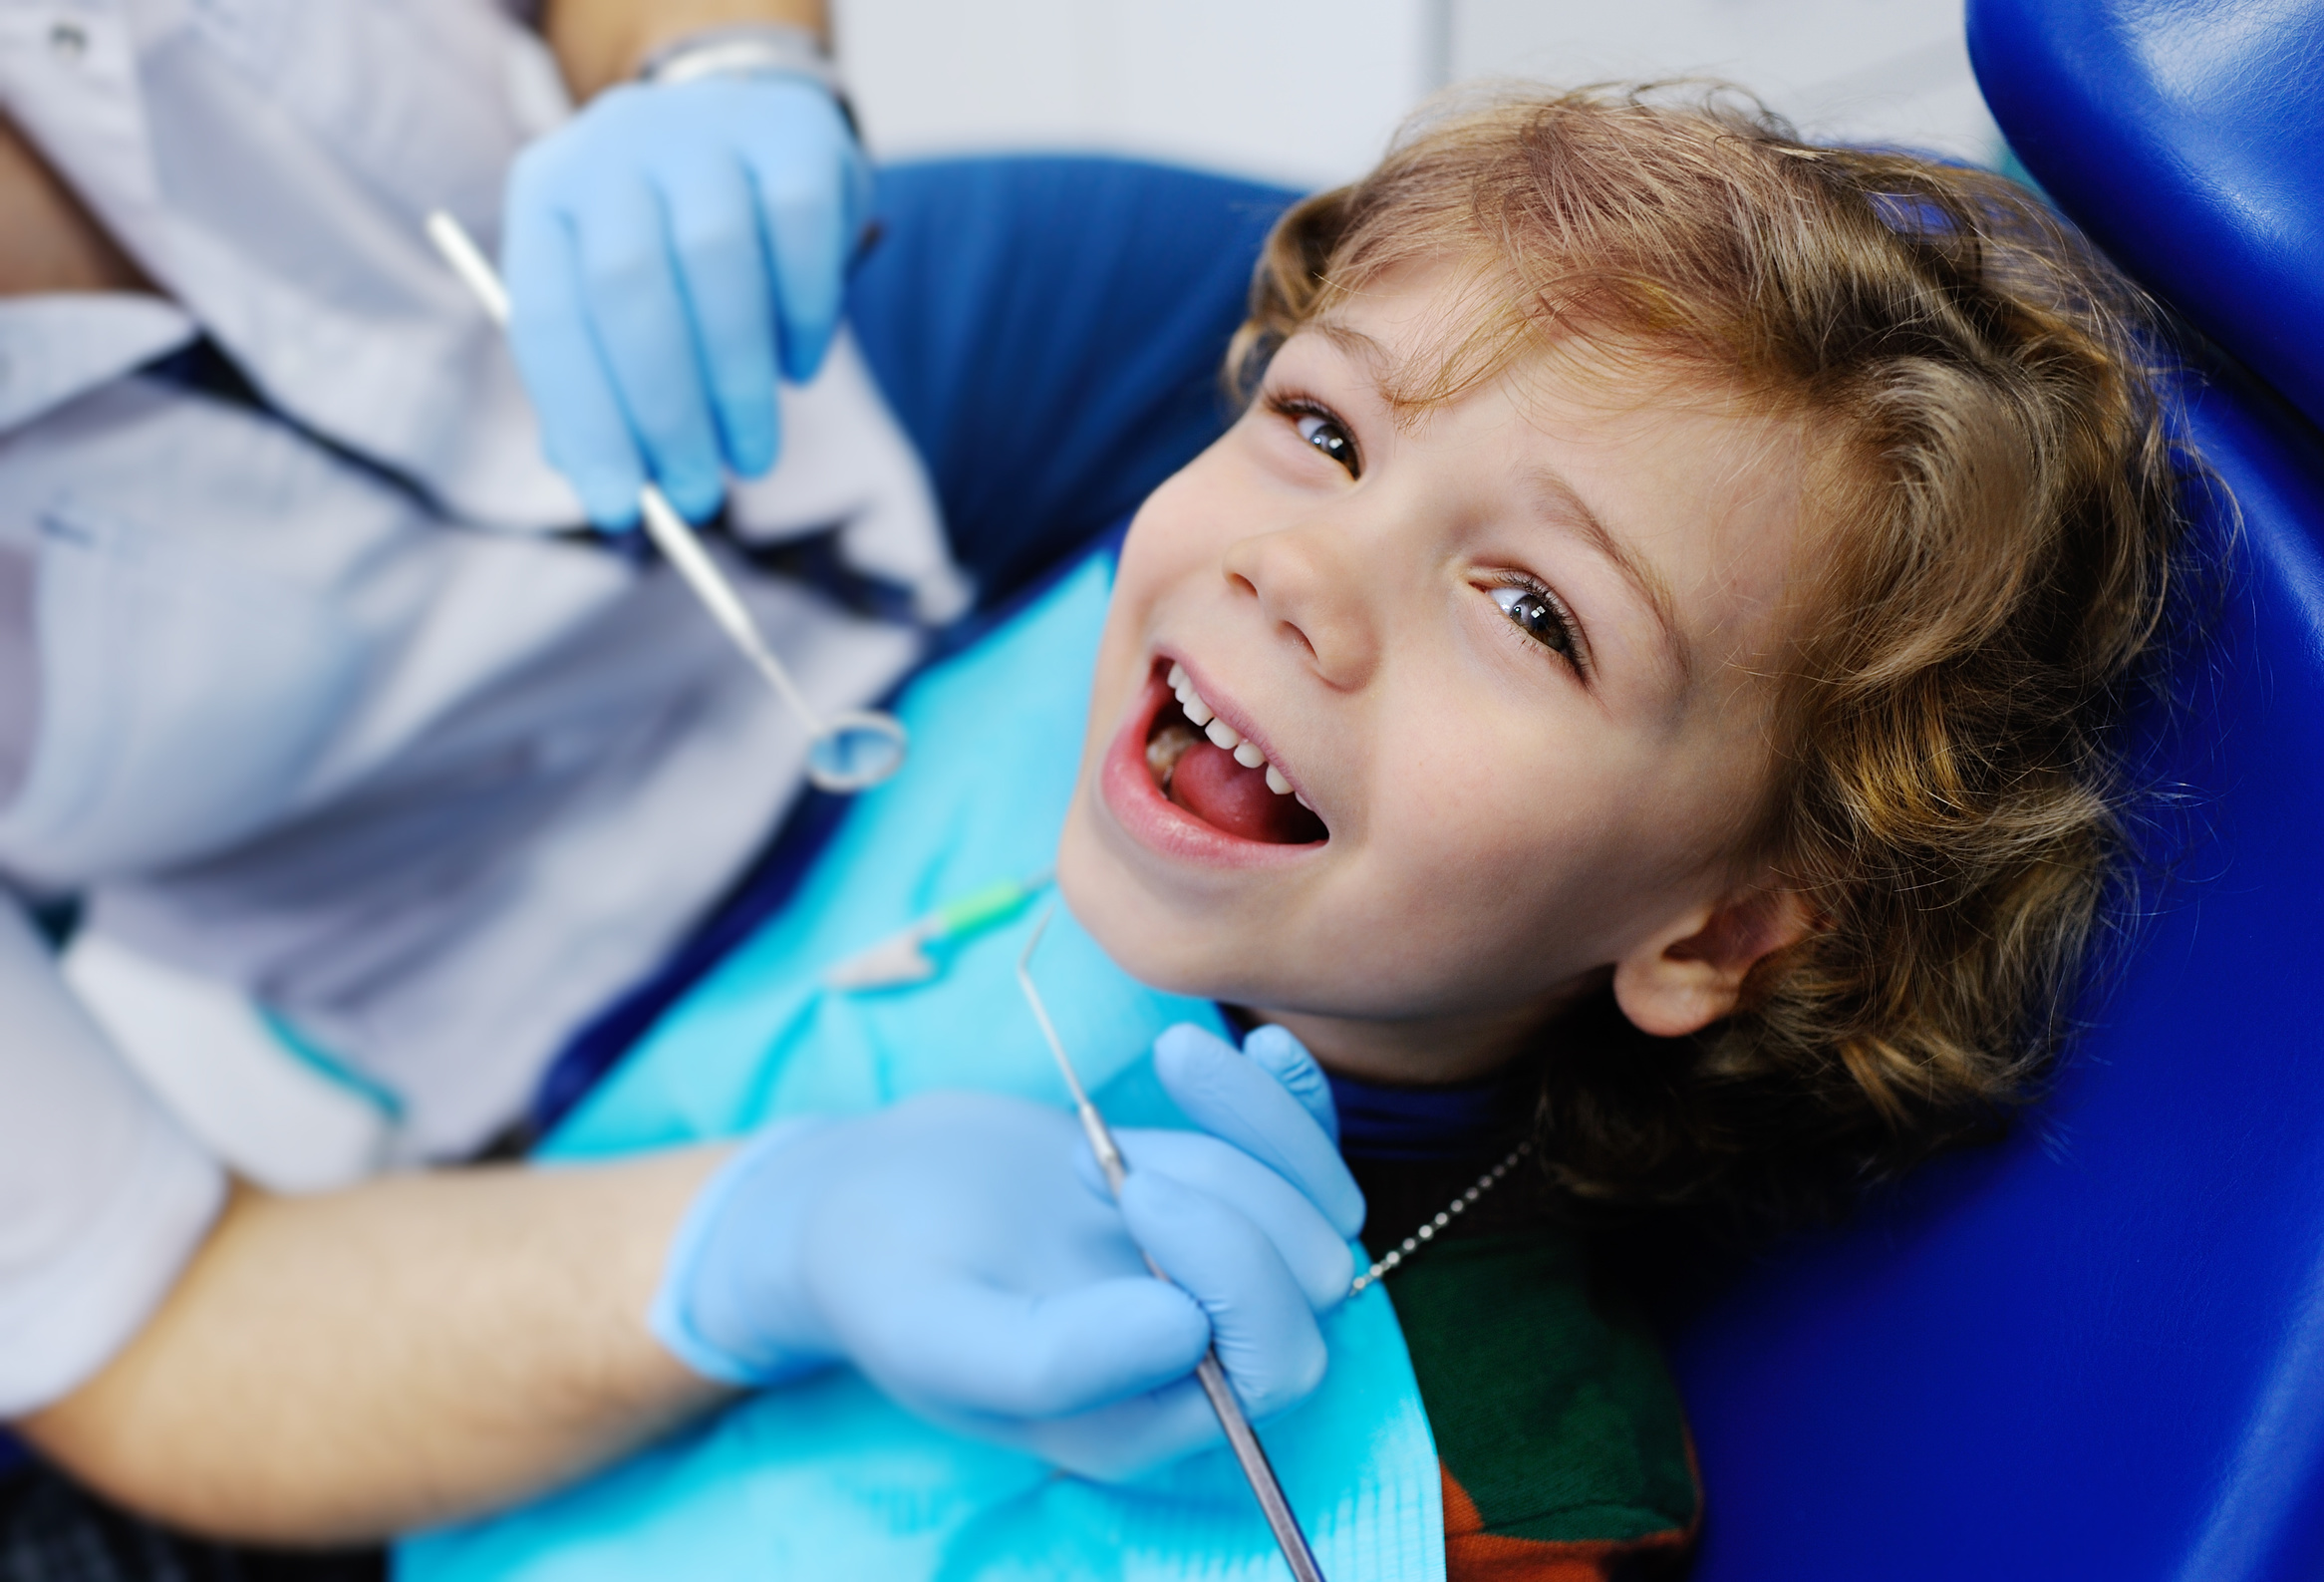 Fotolia 125053015 | child with curly hair at the dentist | Urheber: Evgeniy Kalinovskiy